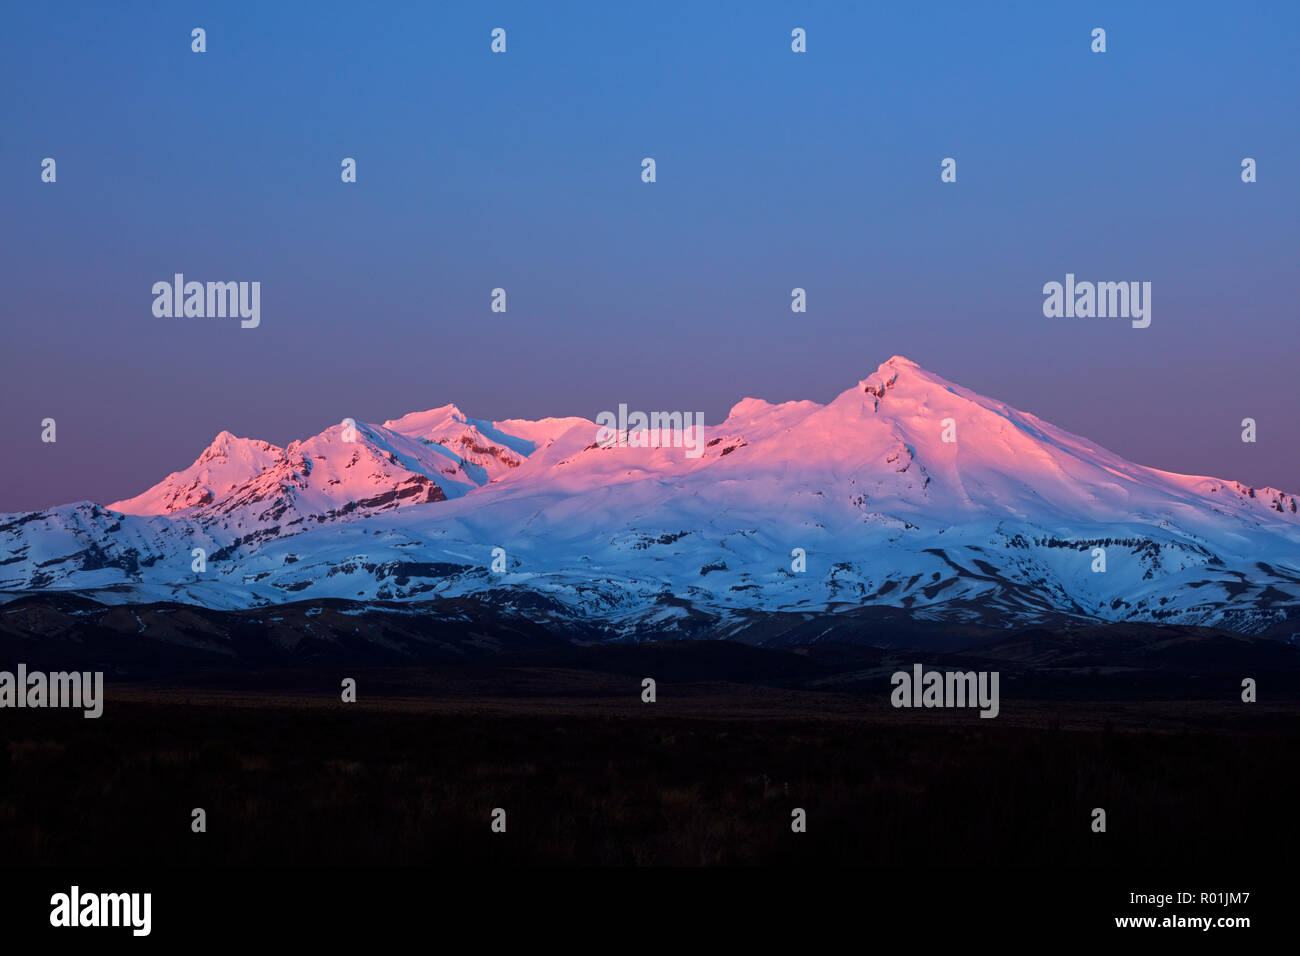 Alpenglow on Mt Ruapehu at dawn, Tongariro National Park, Central Plateau, North Island, New Zealand - Stock Image